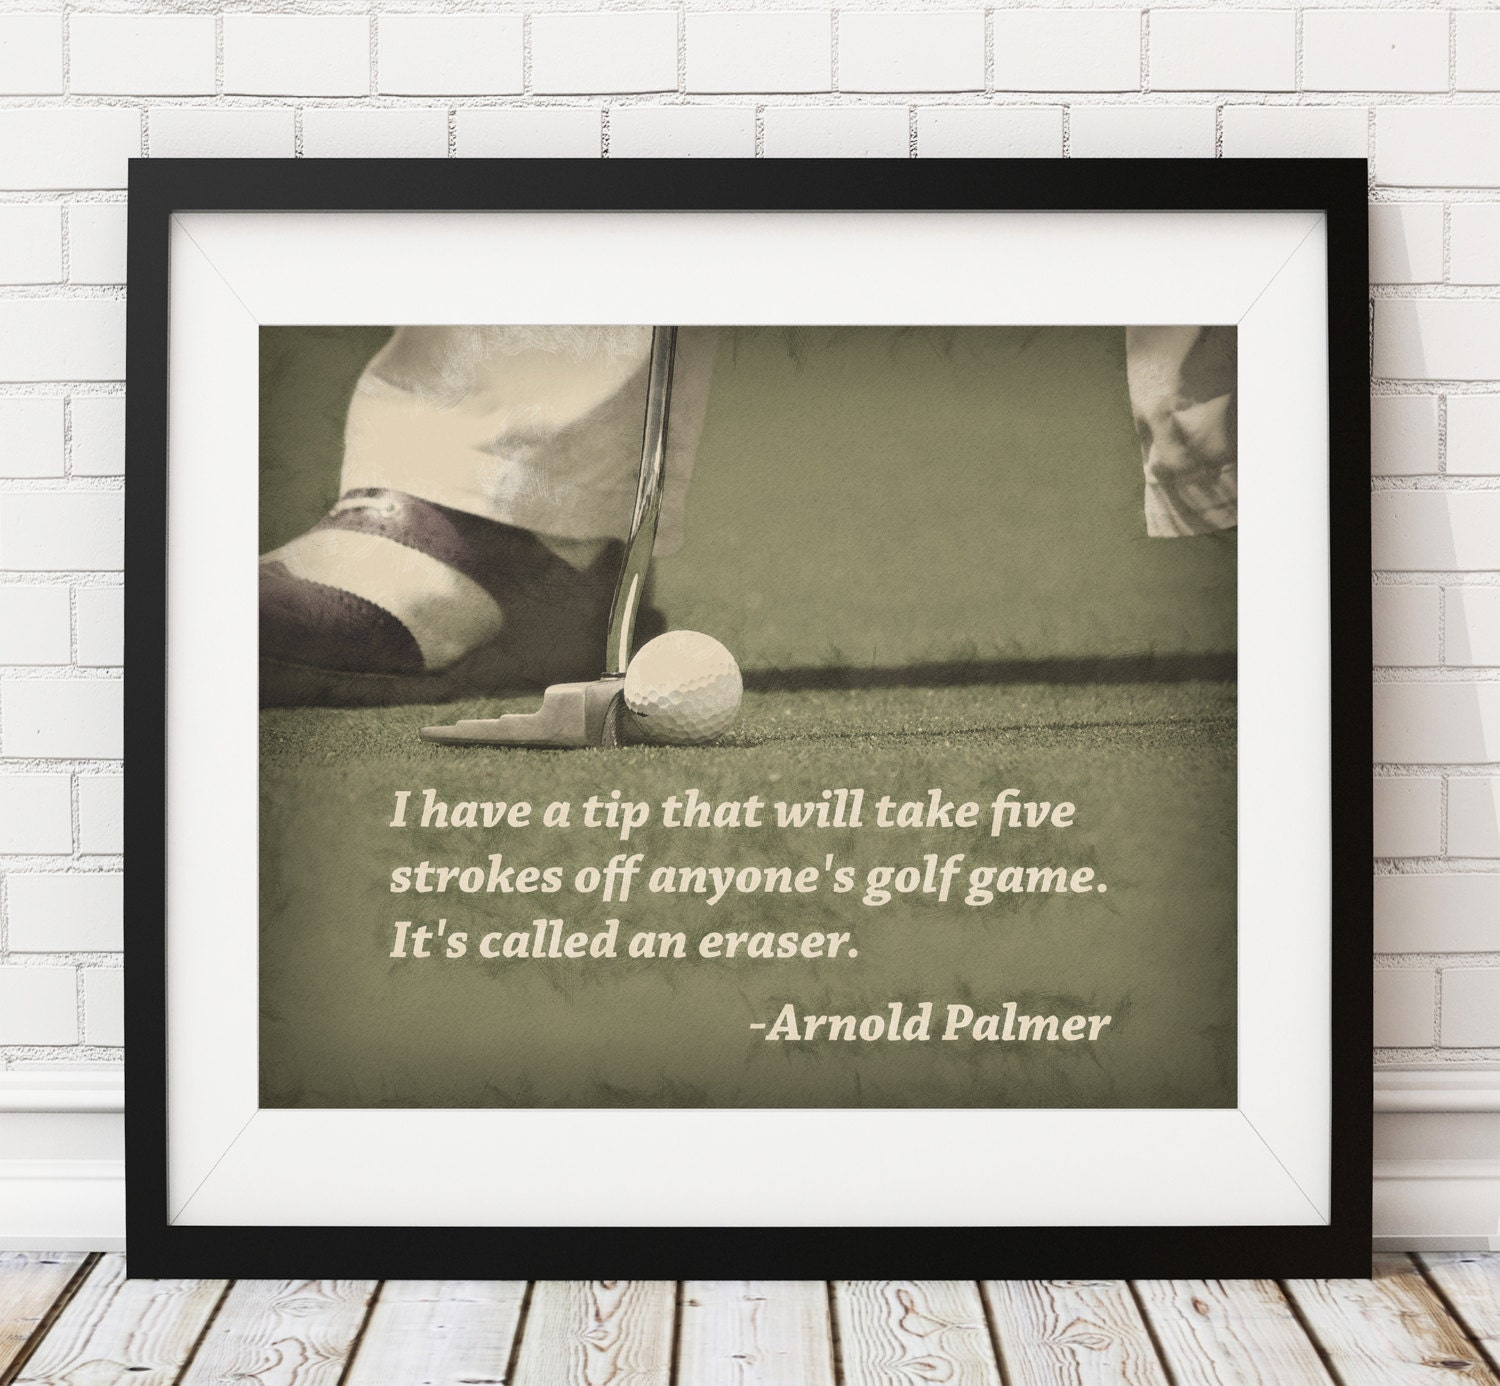 Charmant Golf Print, Golf Art, Arnold Palmer Quote, Poster, Home Gym, Golf Decor,  Sports Wall Decor, Man Cave Art, Office Decor, Golf Gifts For Men